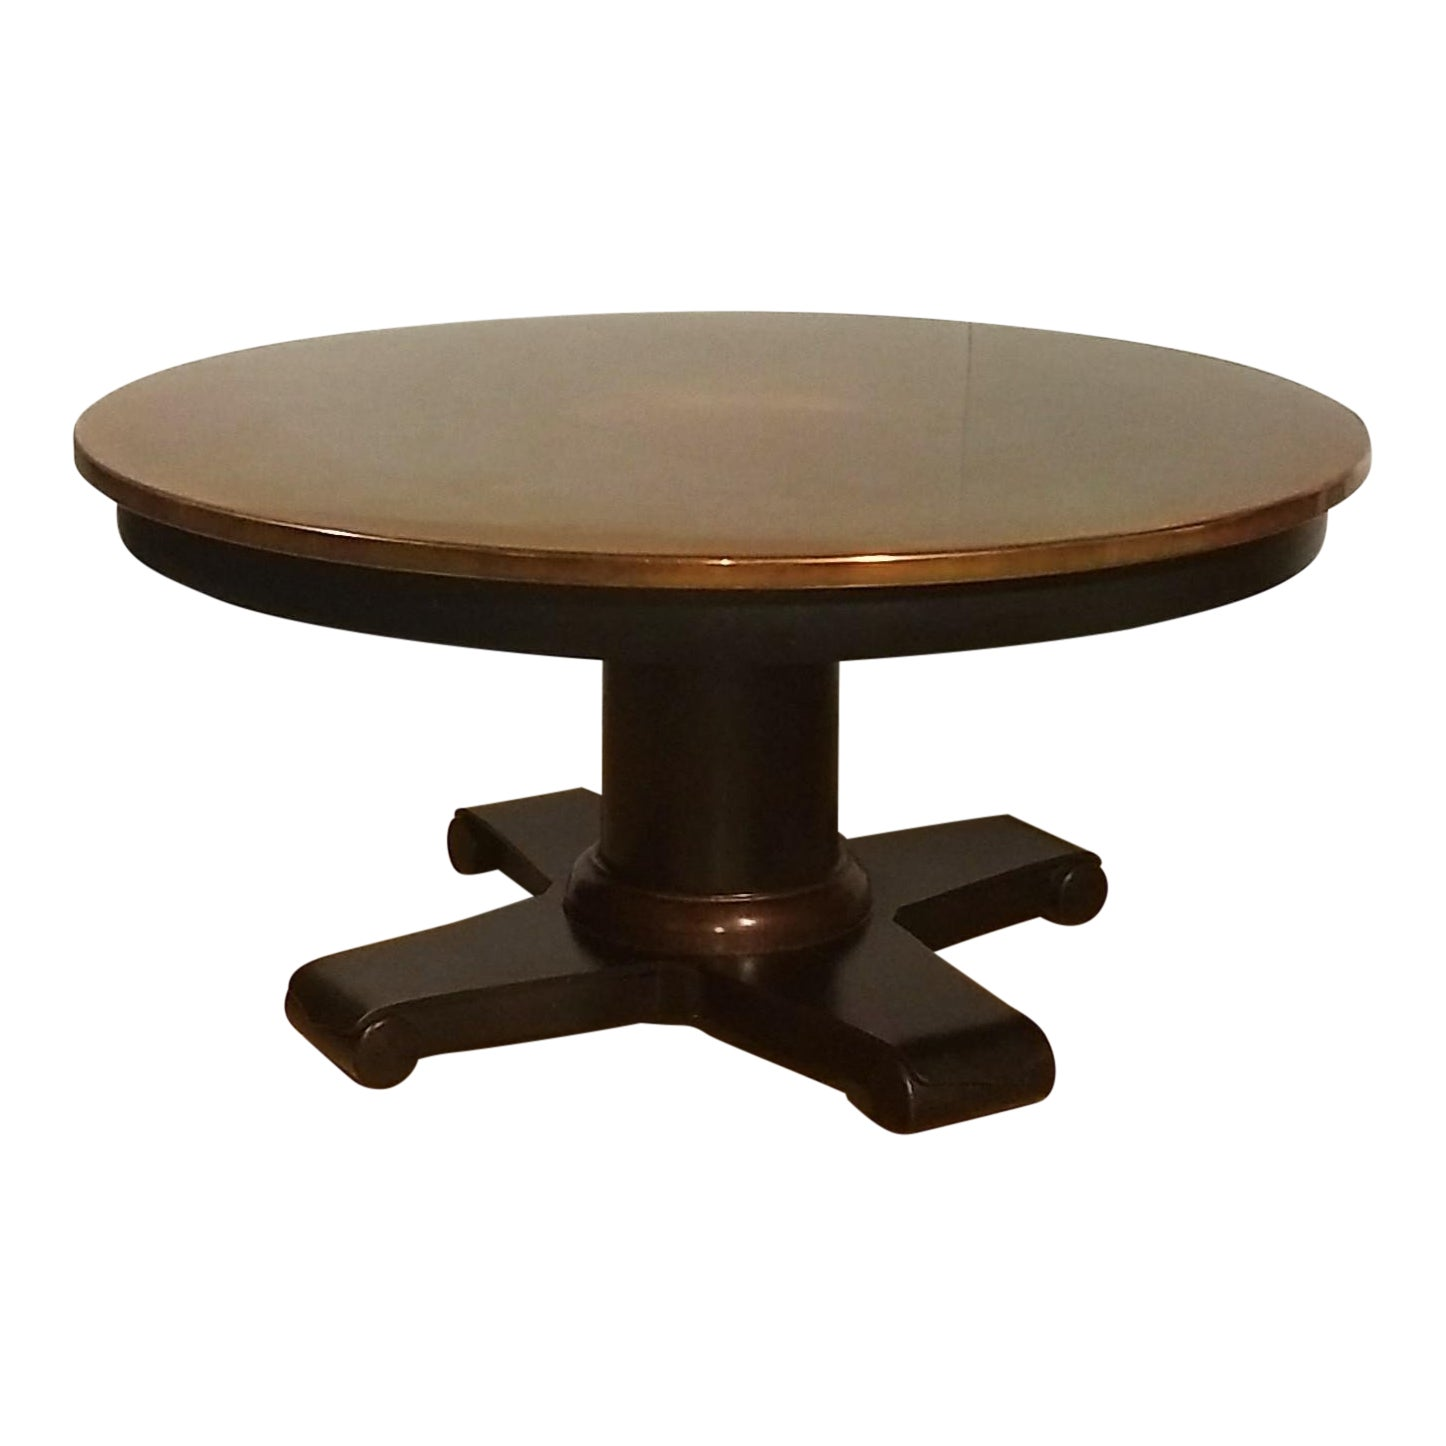 Crate Barrel Collina Round Copper Topped Coffee Table With Black Metal Base Chairish